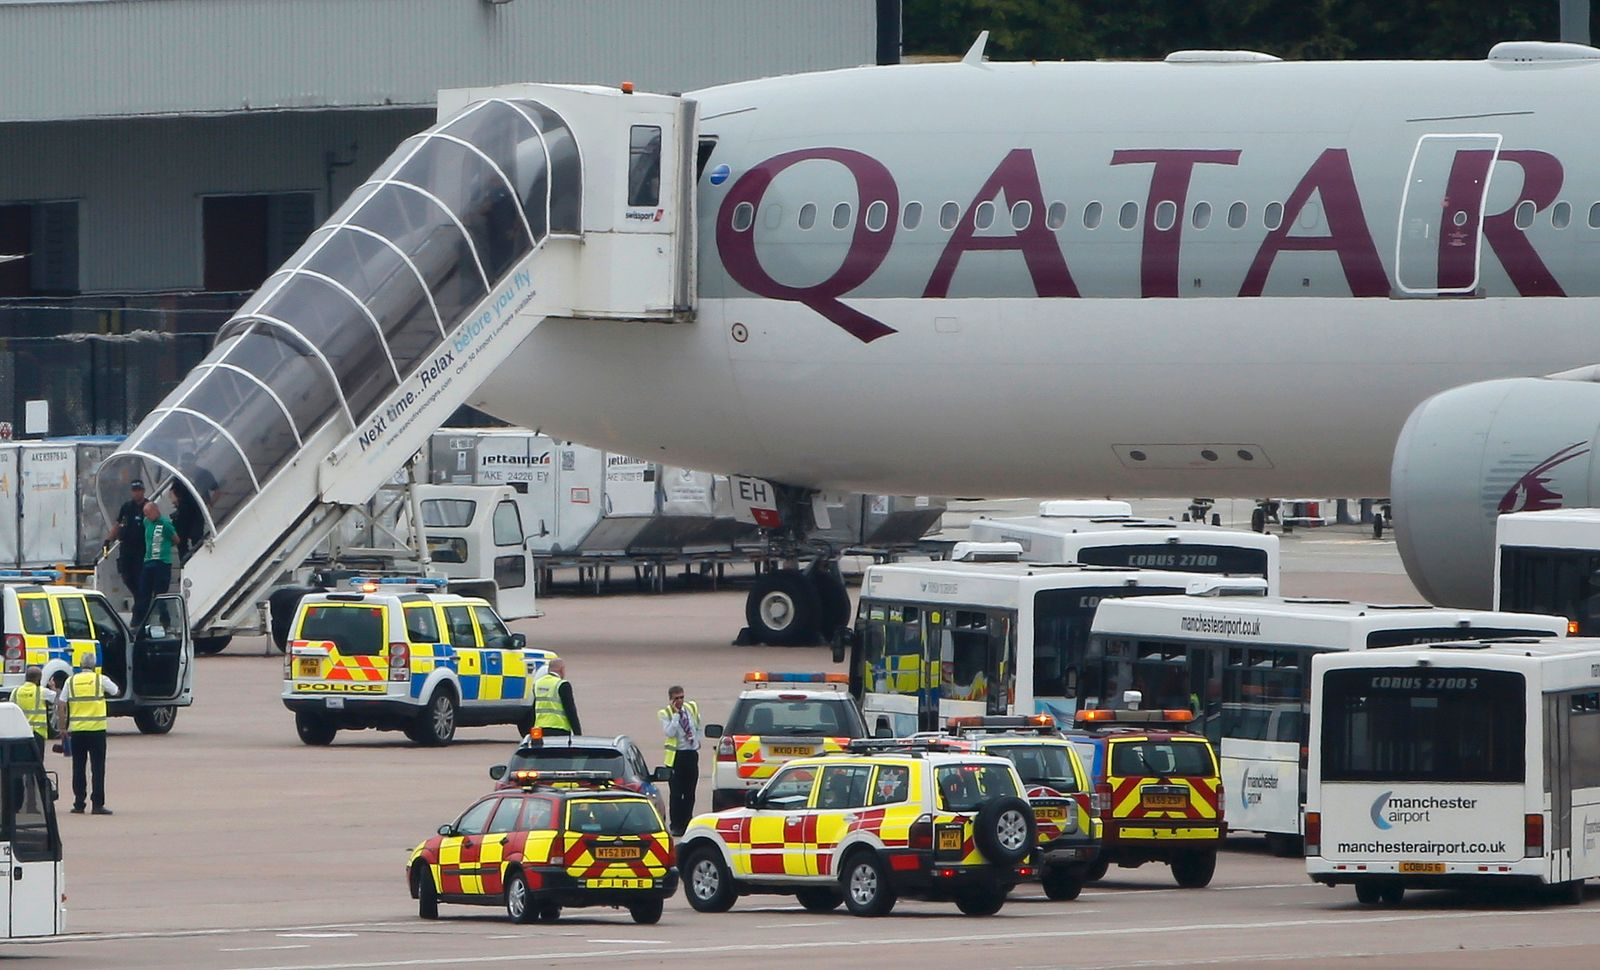 A man is escorted off a Qatar Airways aircraft by police at Manchester airport in Manchester, northern England